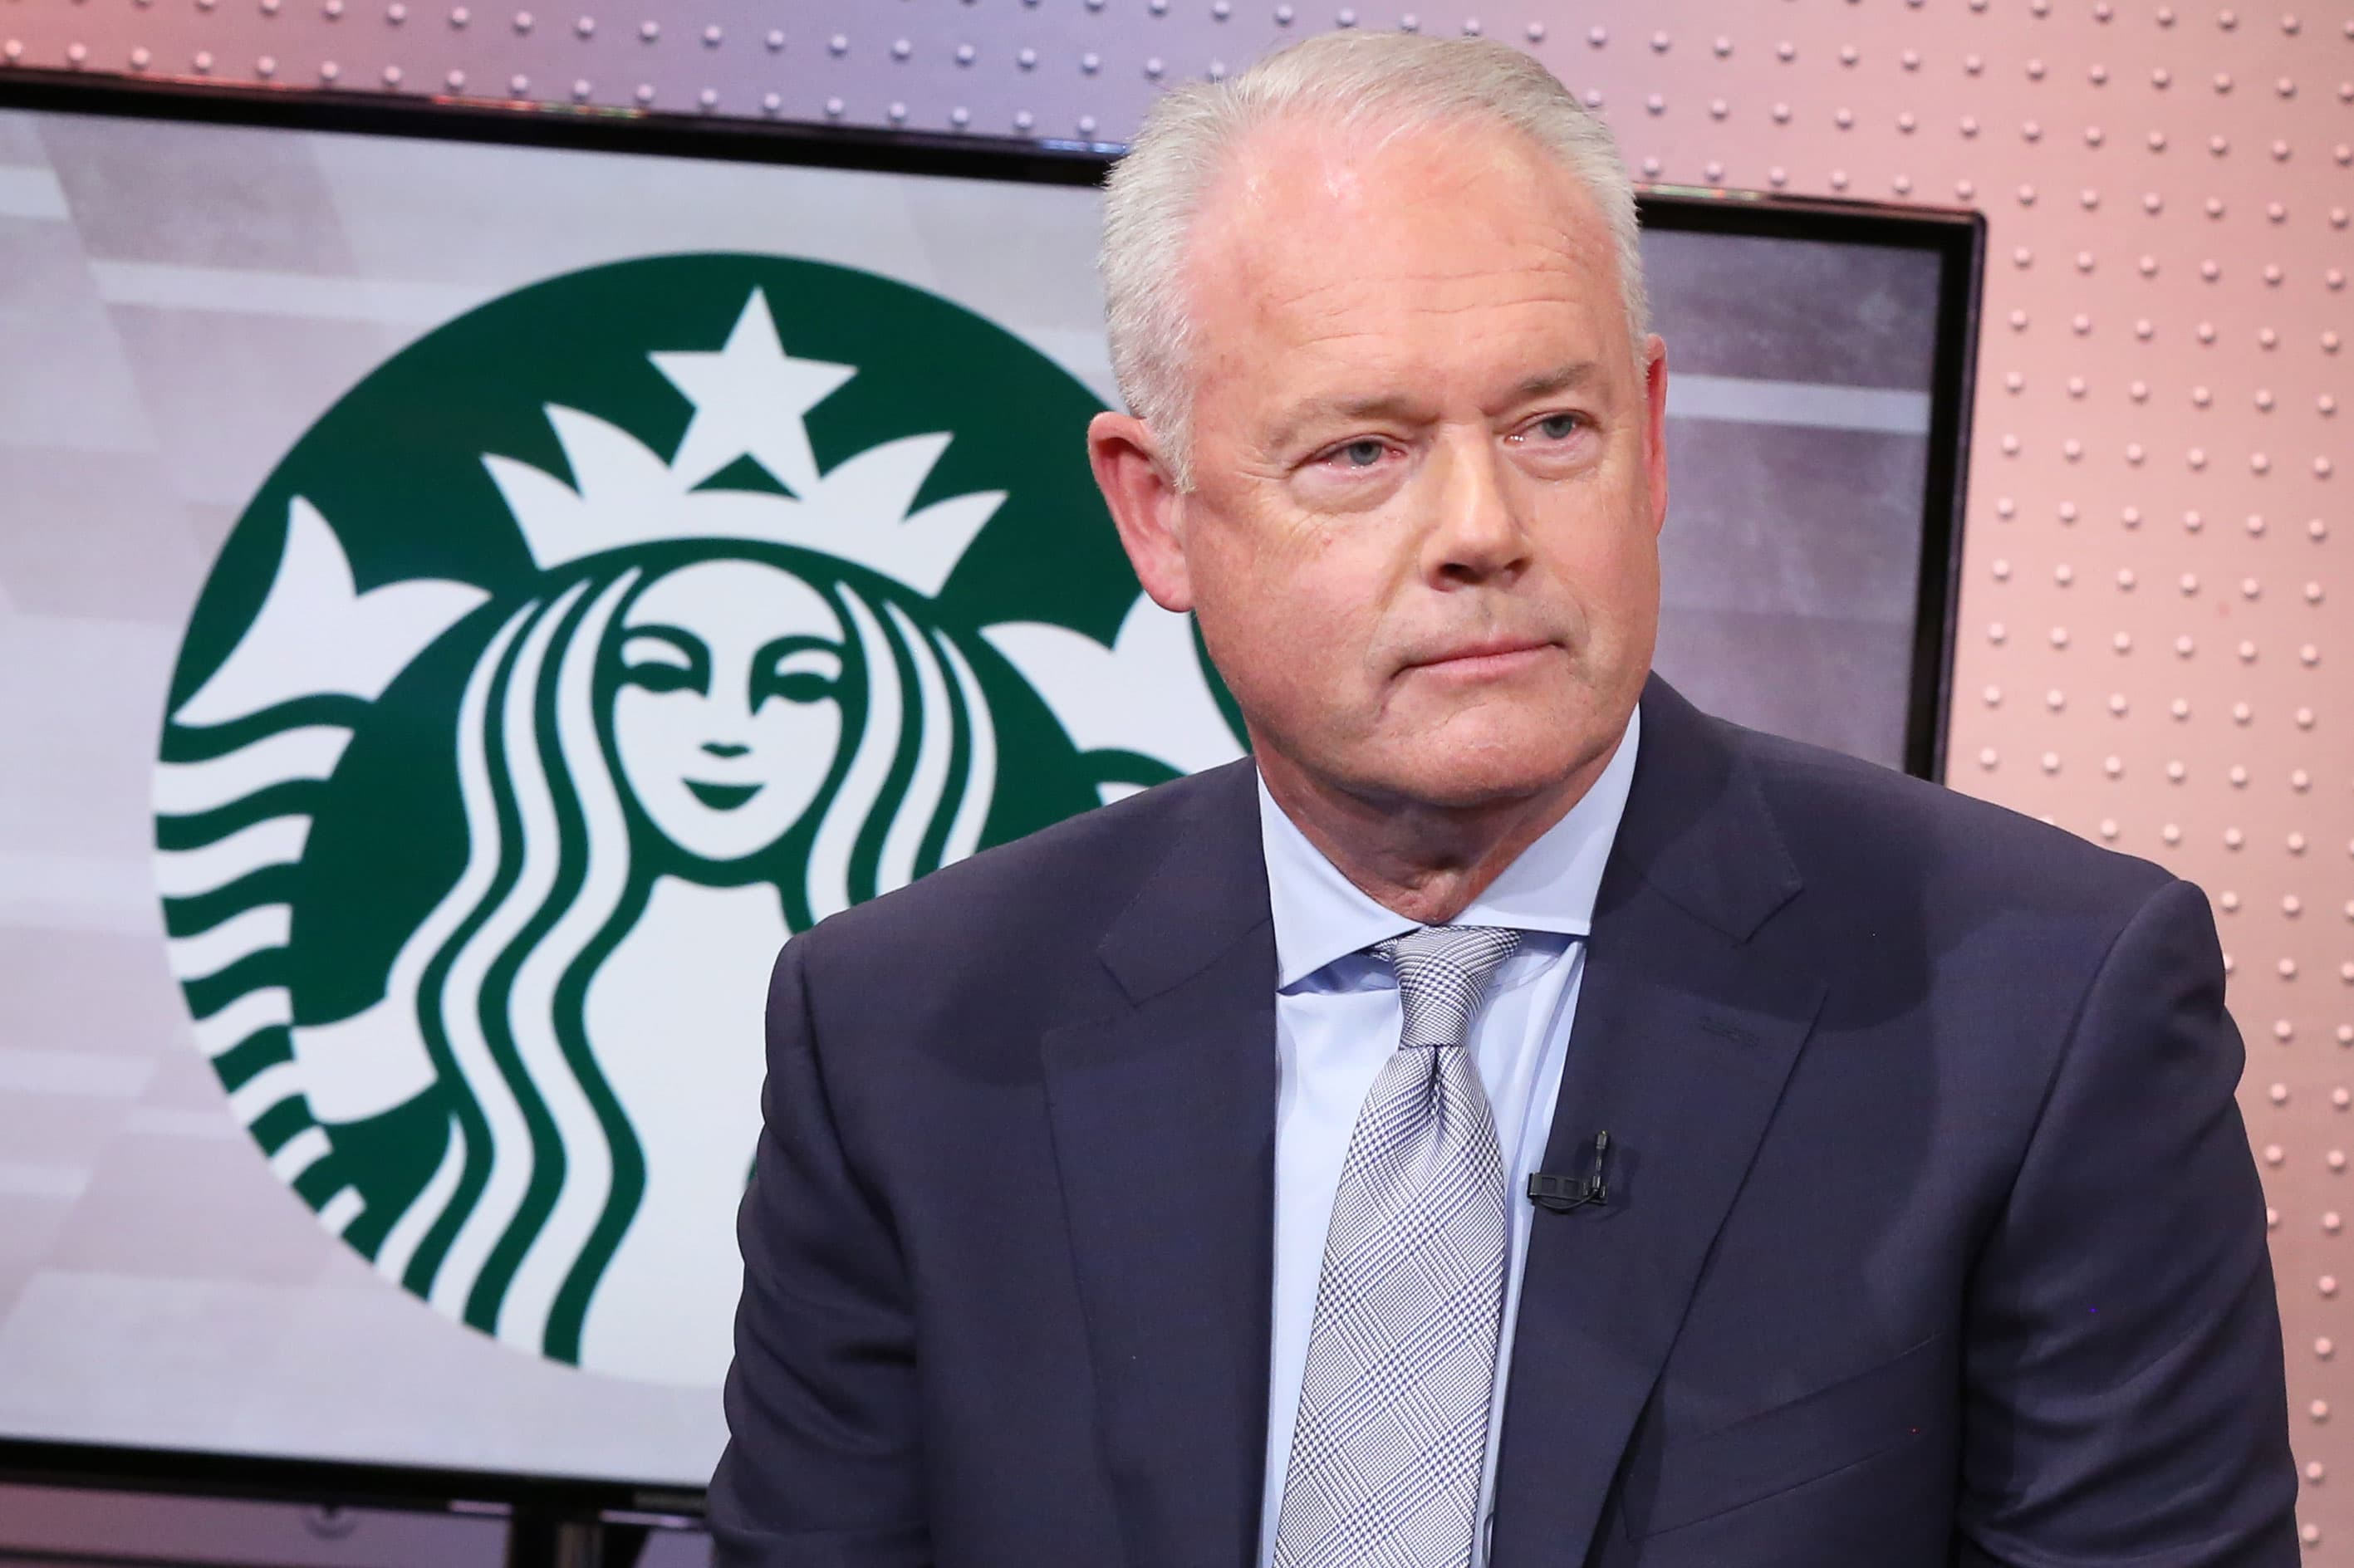 Starbucks (SBUX) Q1 2021 earnings